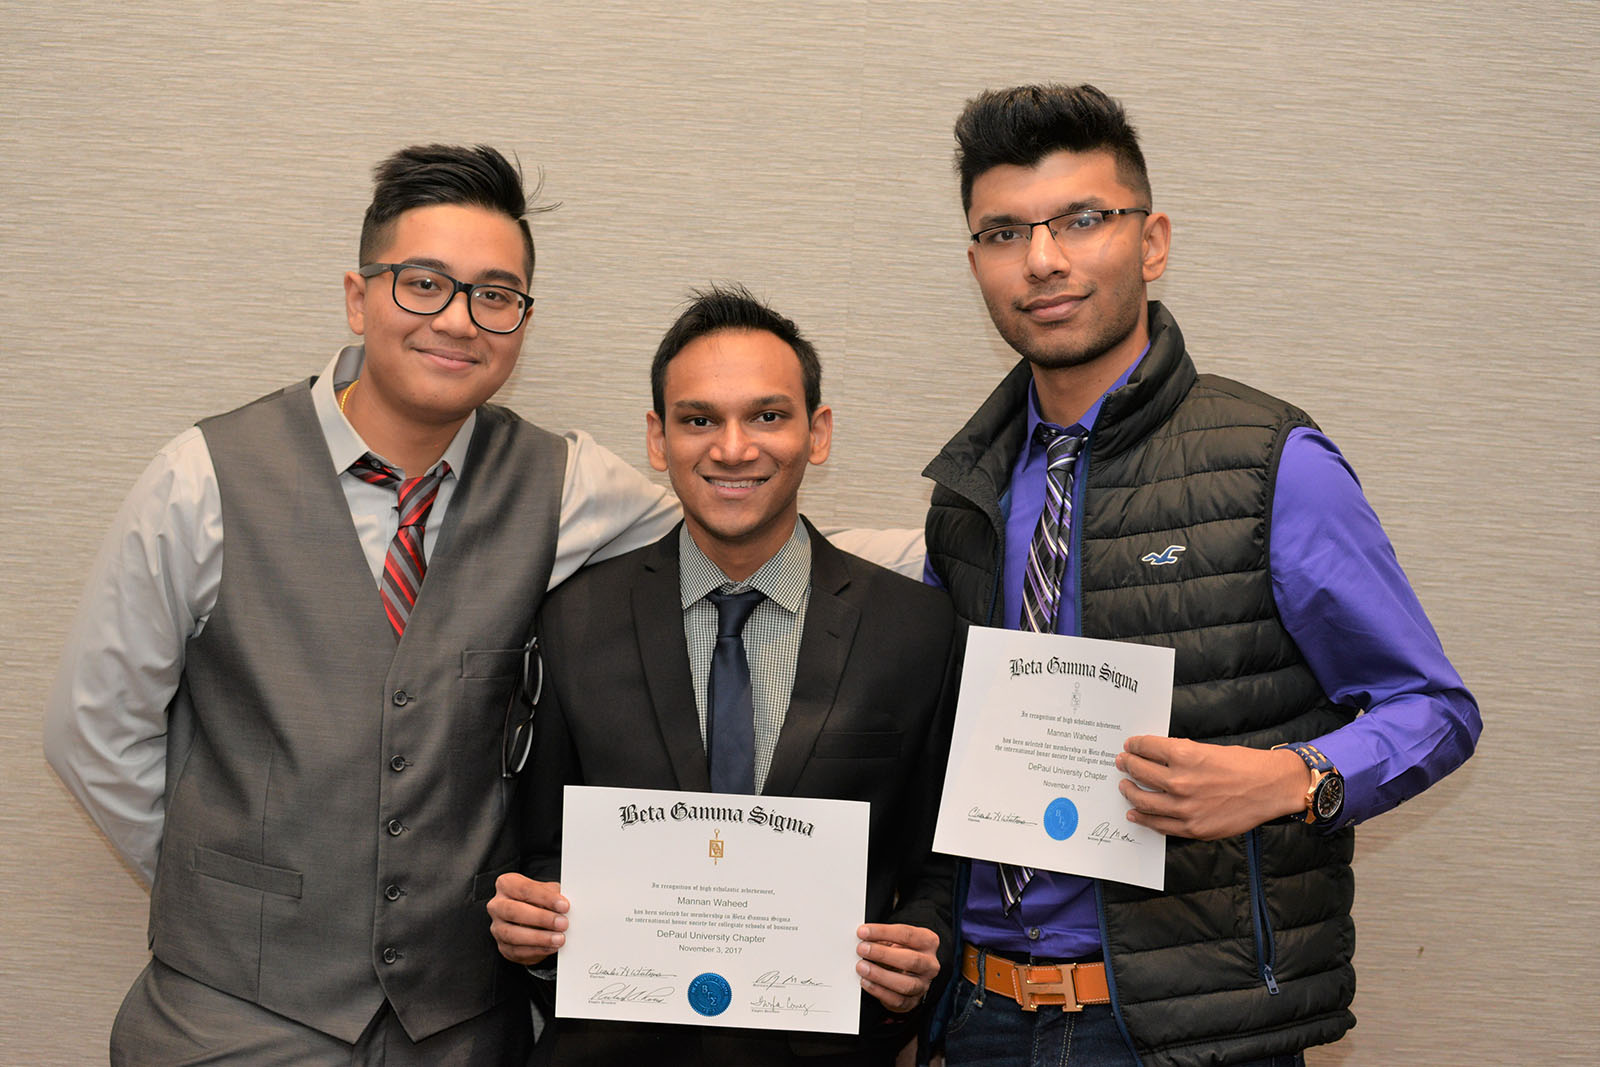 DePaul business students pose with their Beta Gamma Sigma induction certificates.